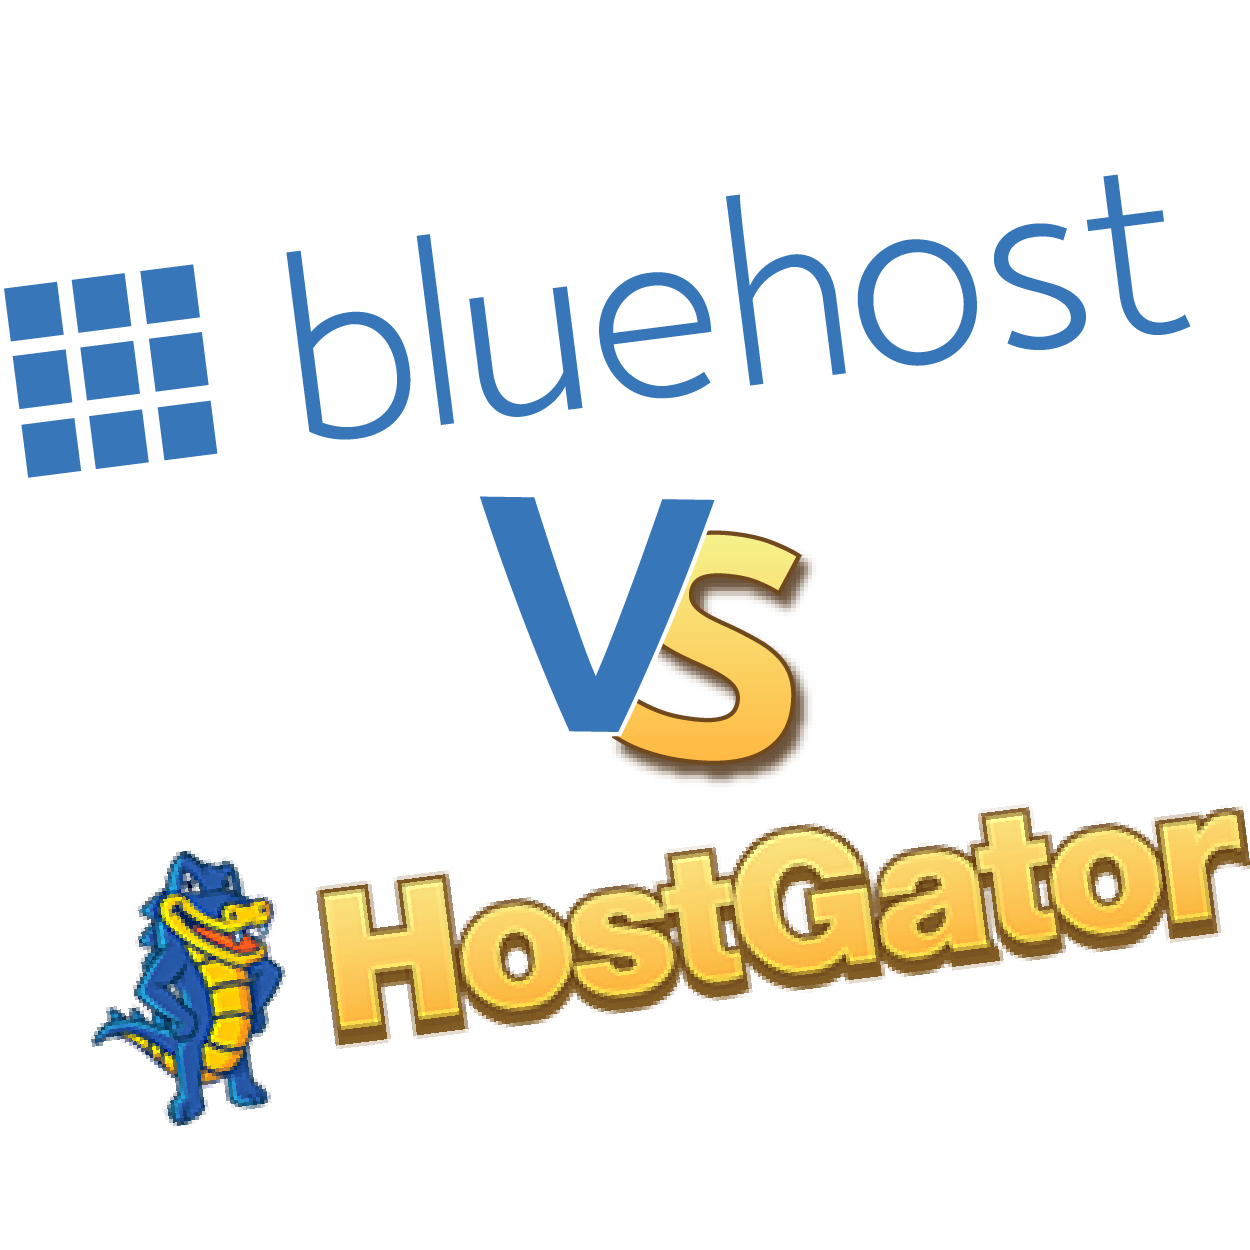 hostgator vs godaddy vs bluehost